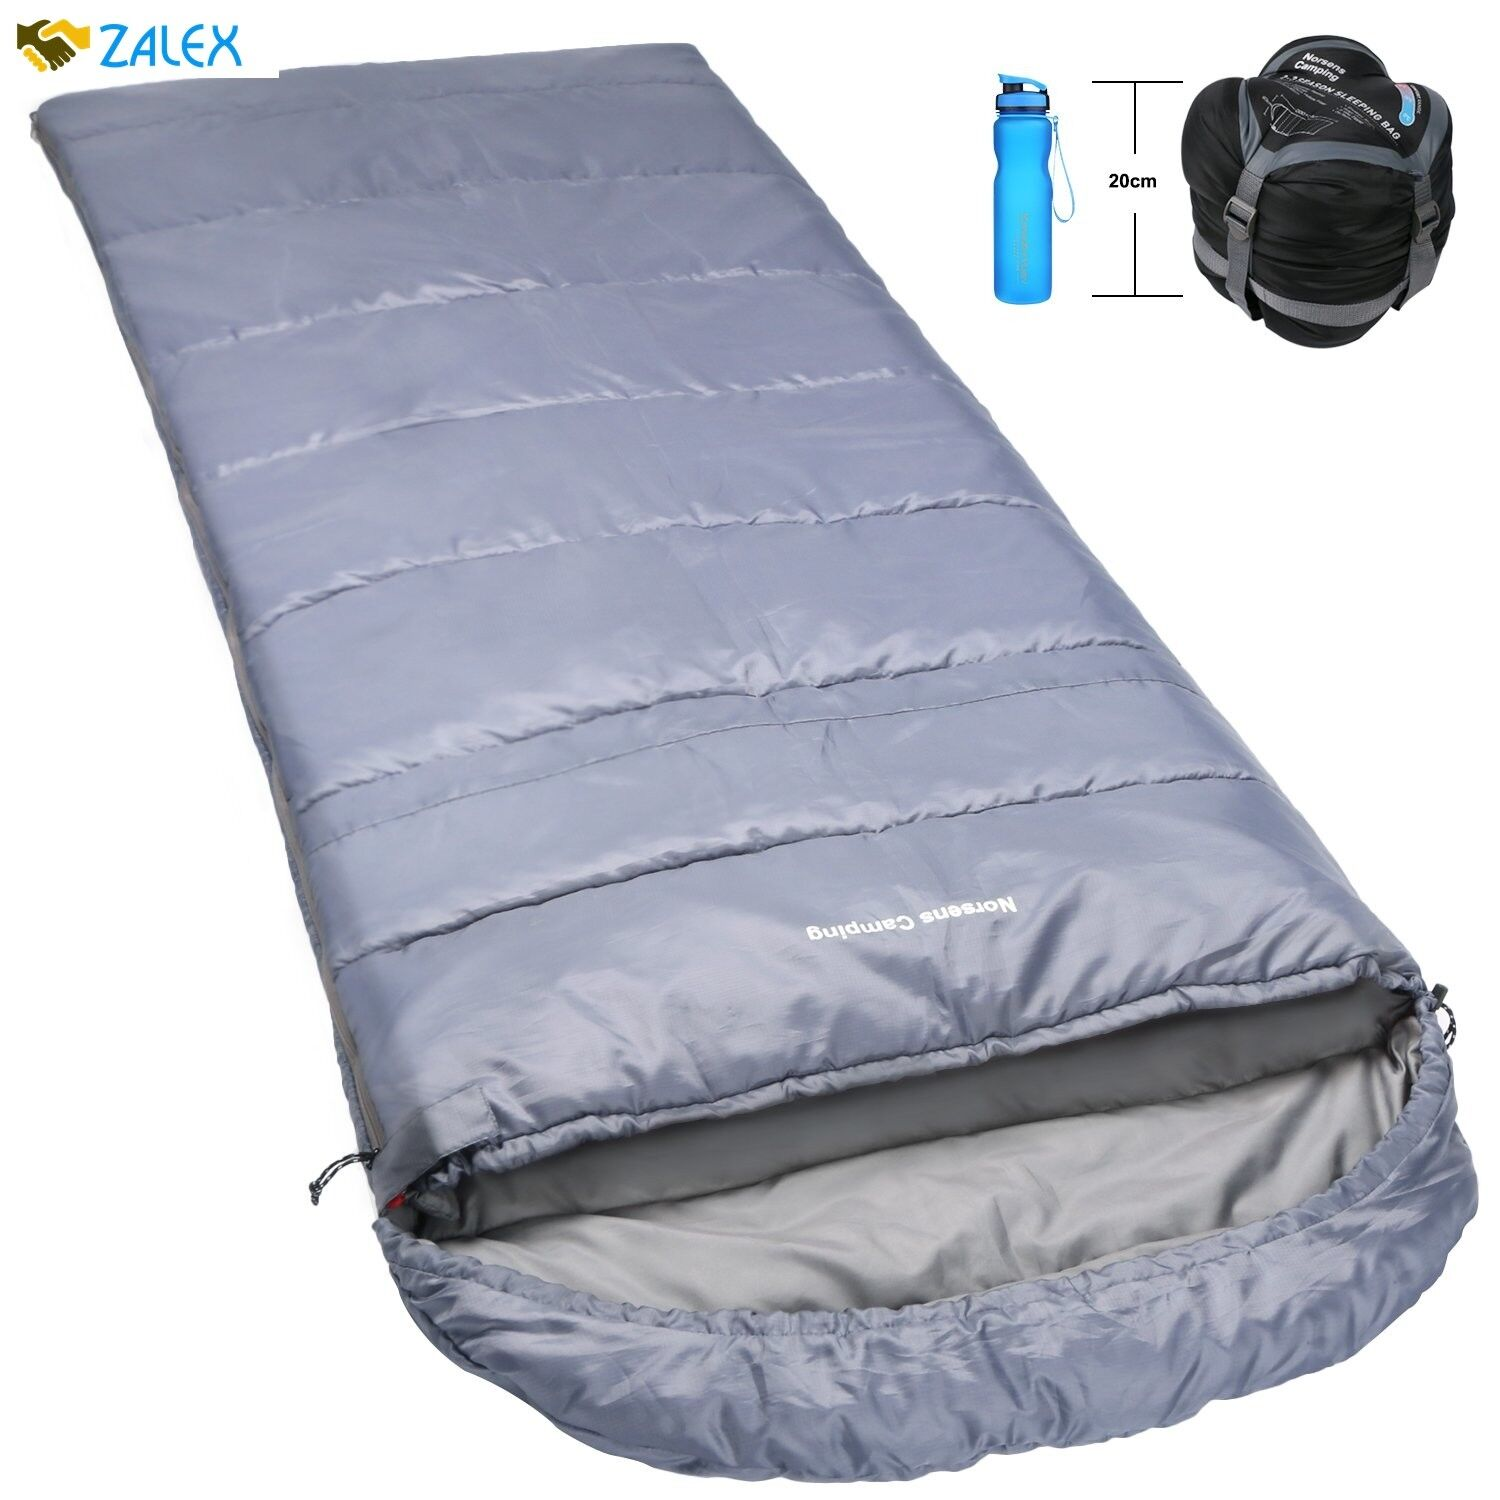 Emergency Sleeping Bag Lightweight Ultralight Compact Cold Weather Extra Long